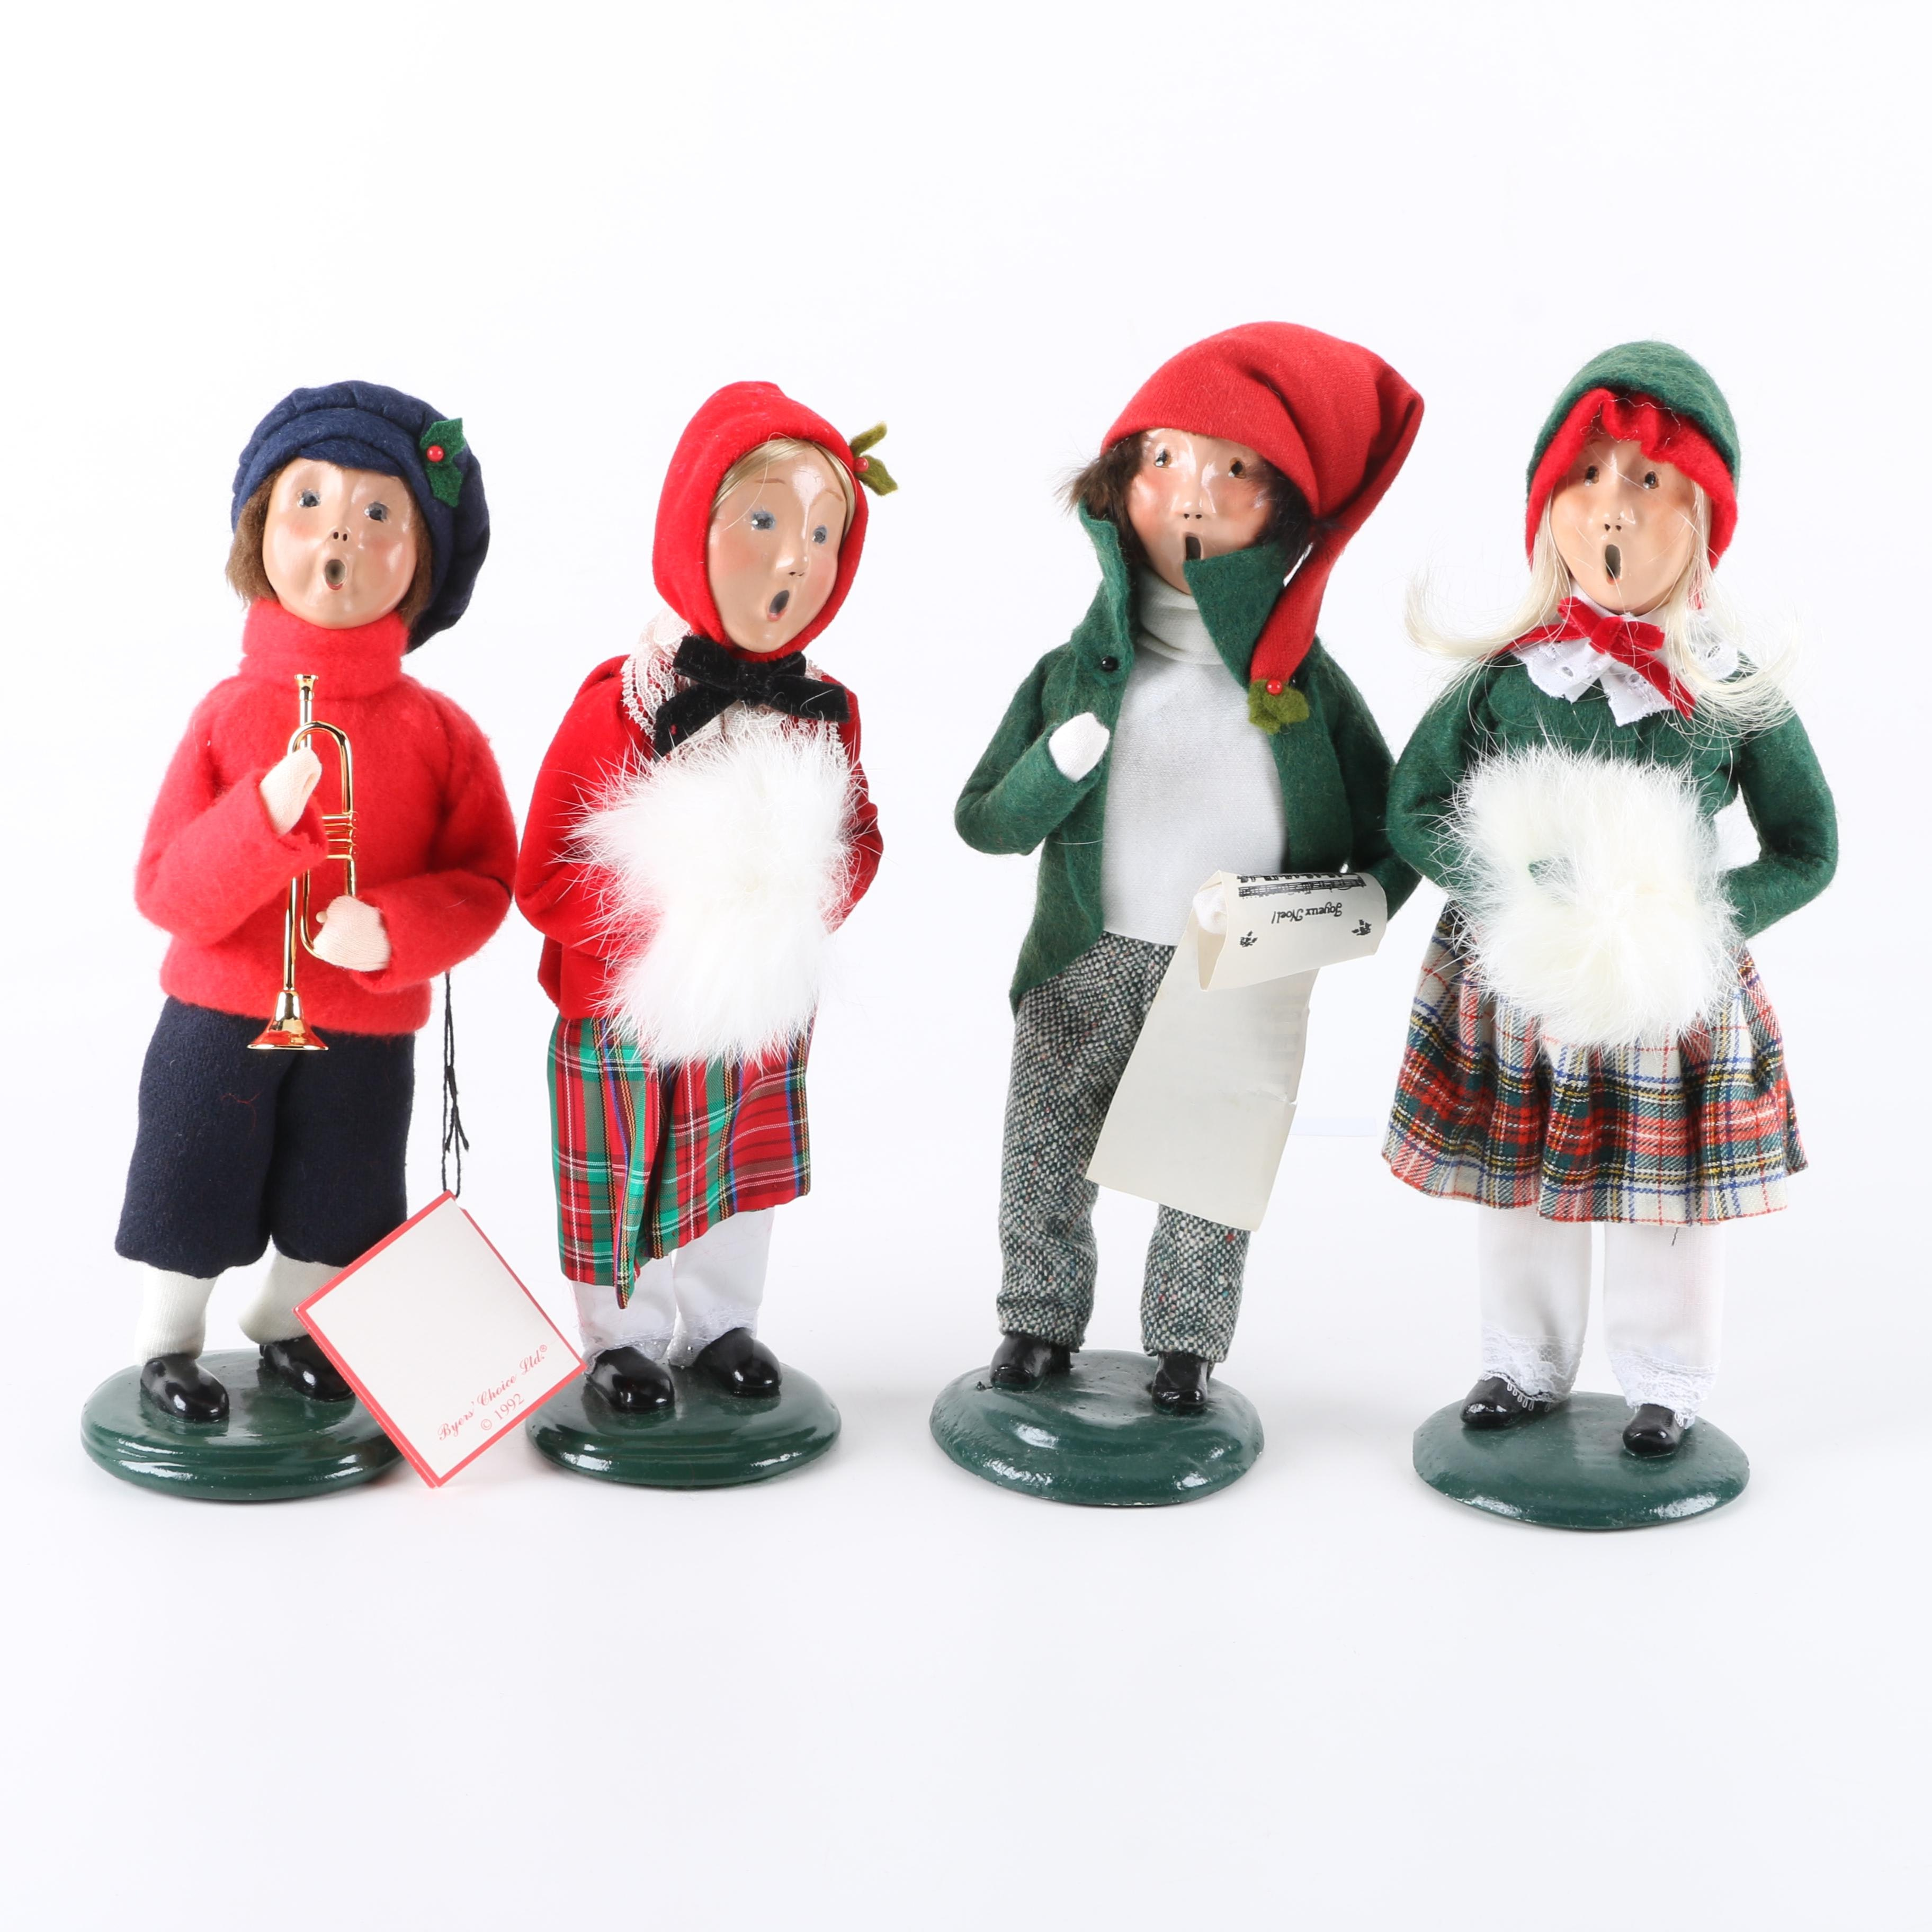 Byer's Choice Holiday Carolers Figurines